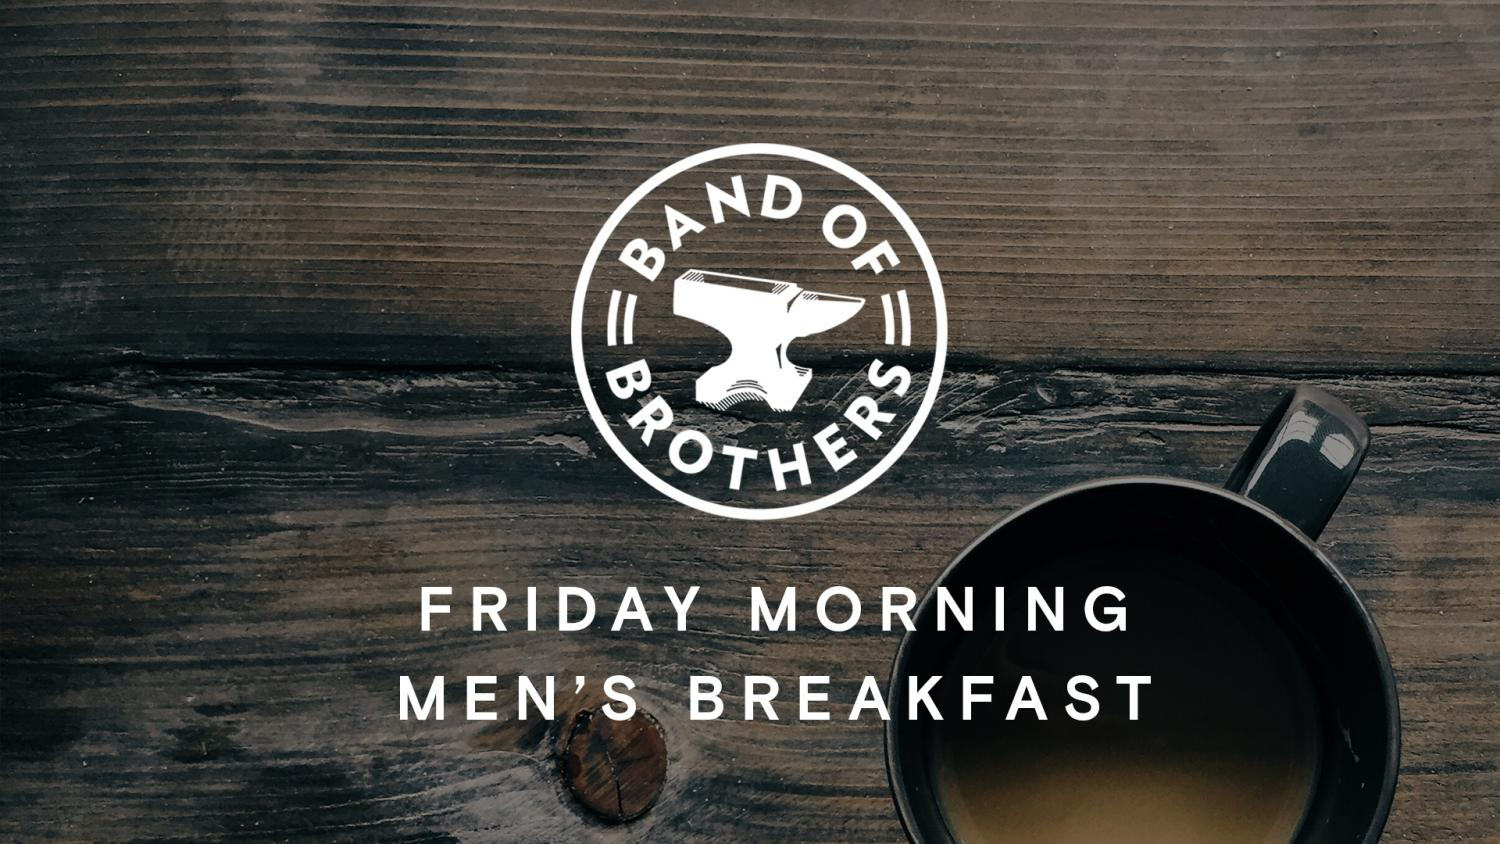 Band of Brothers Friday Morning